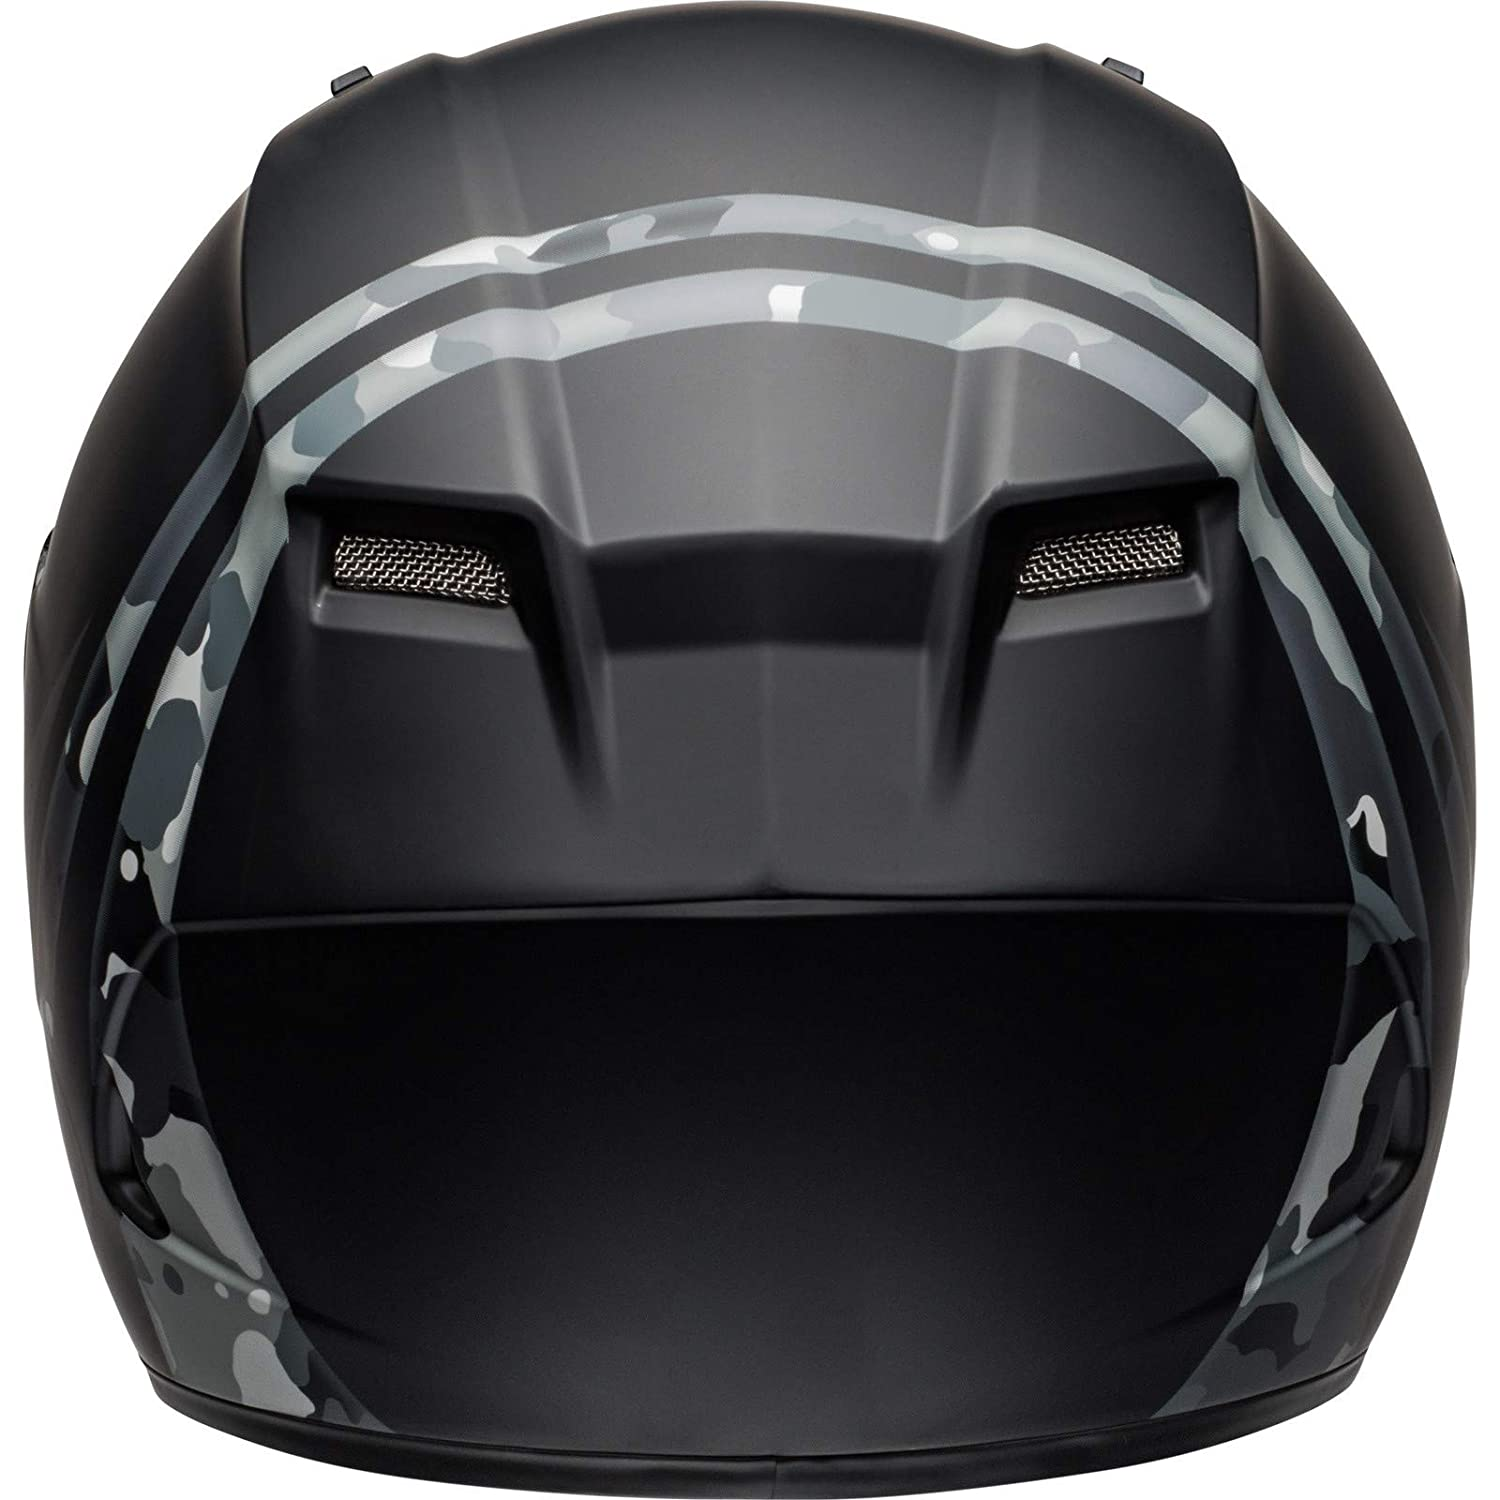 BELL Qualifier Integrity Motorcycle Helmet